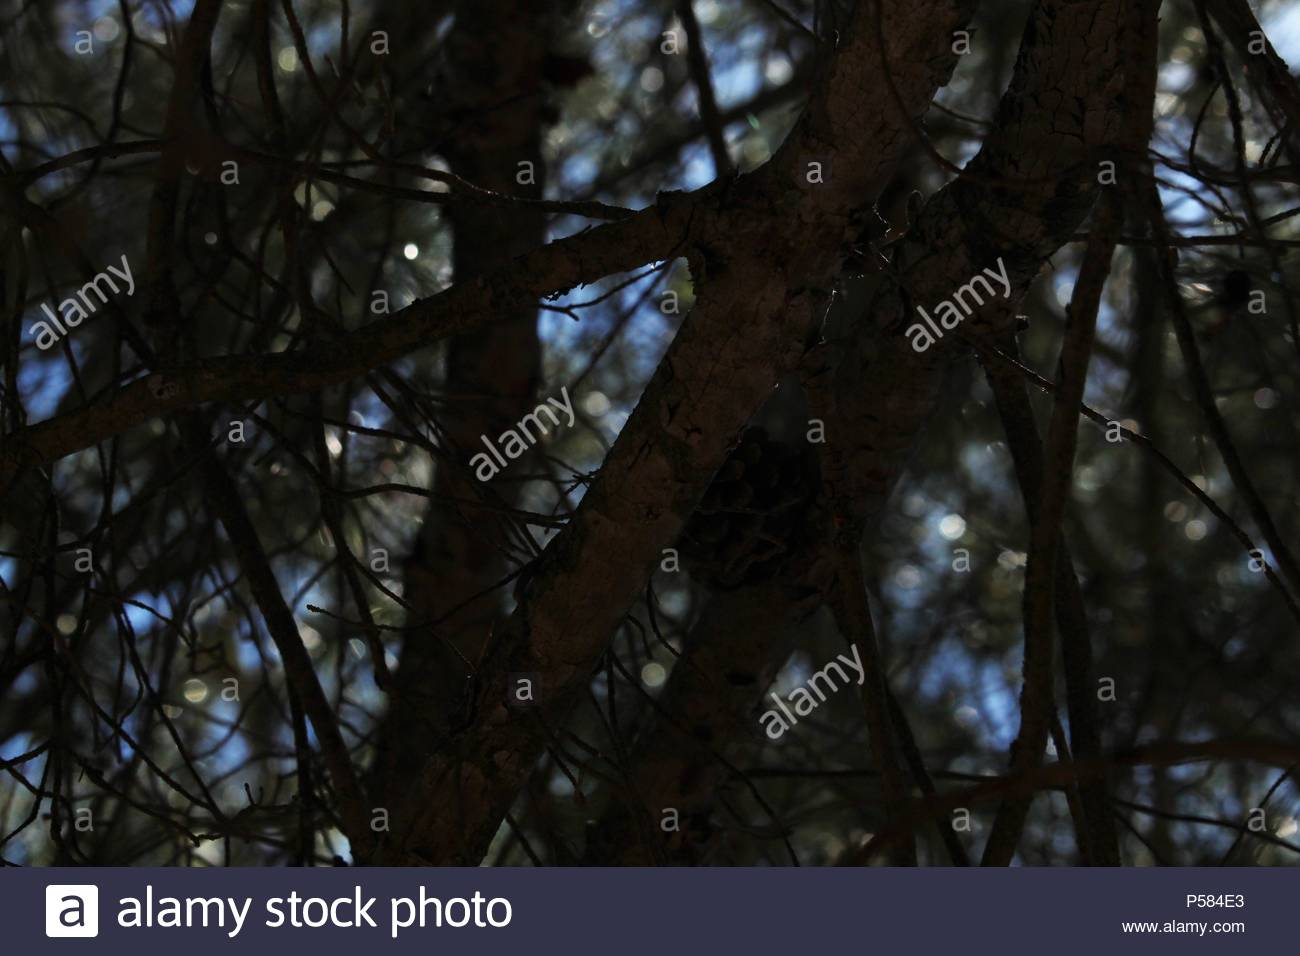 Upward angular shot of an Aleppo pine (Pinus halepensis) with a single pine cone suspended from branch. Bokeh in shot. - Stock Image